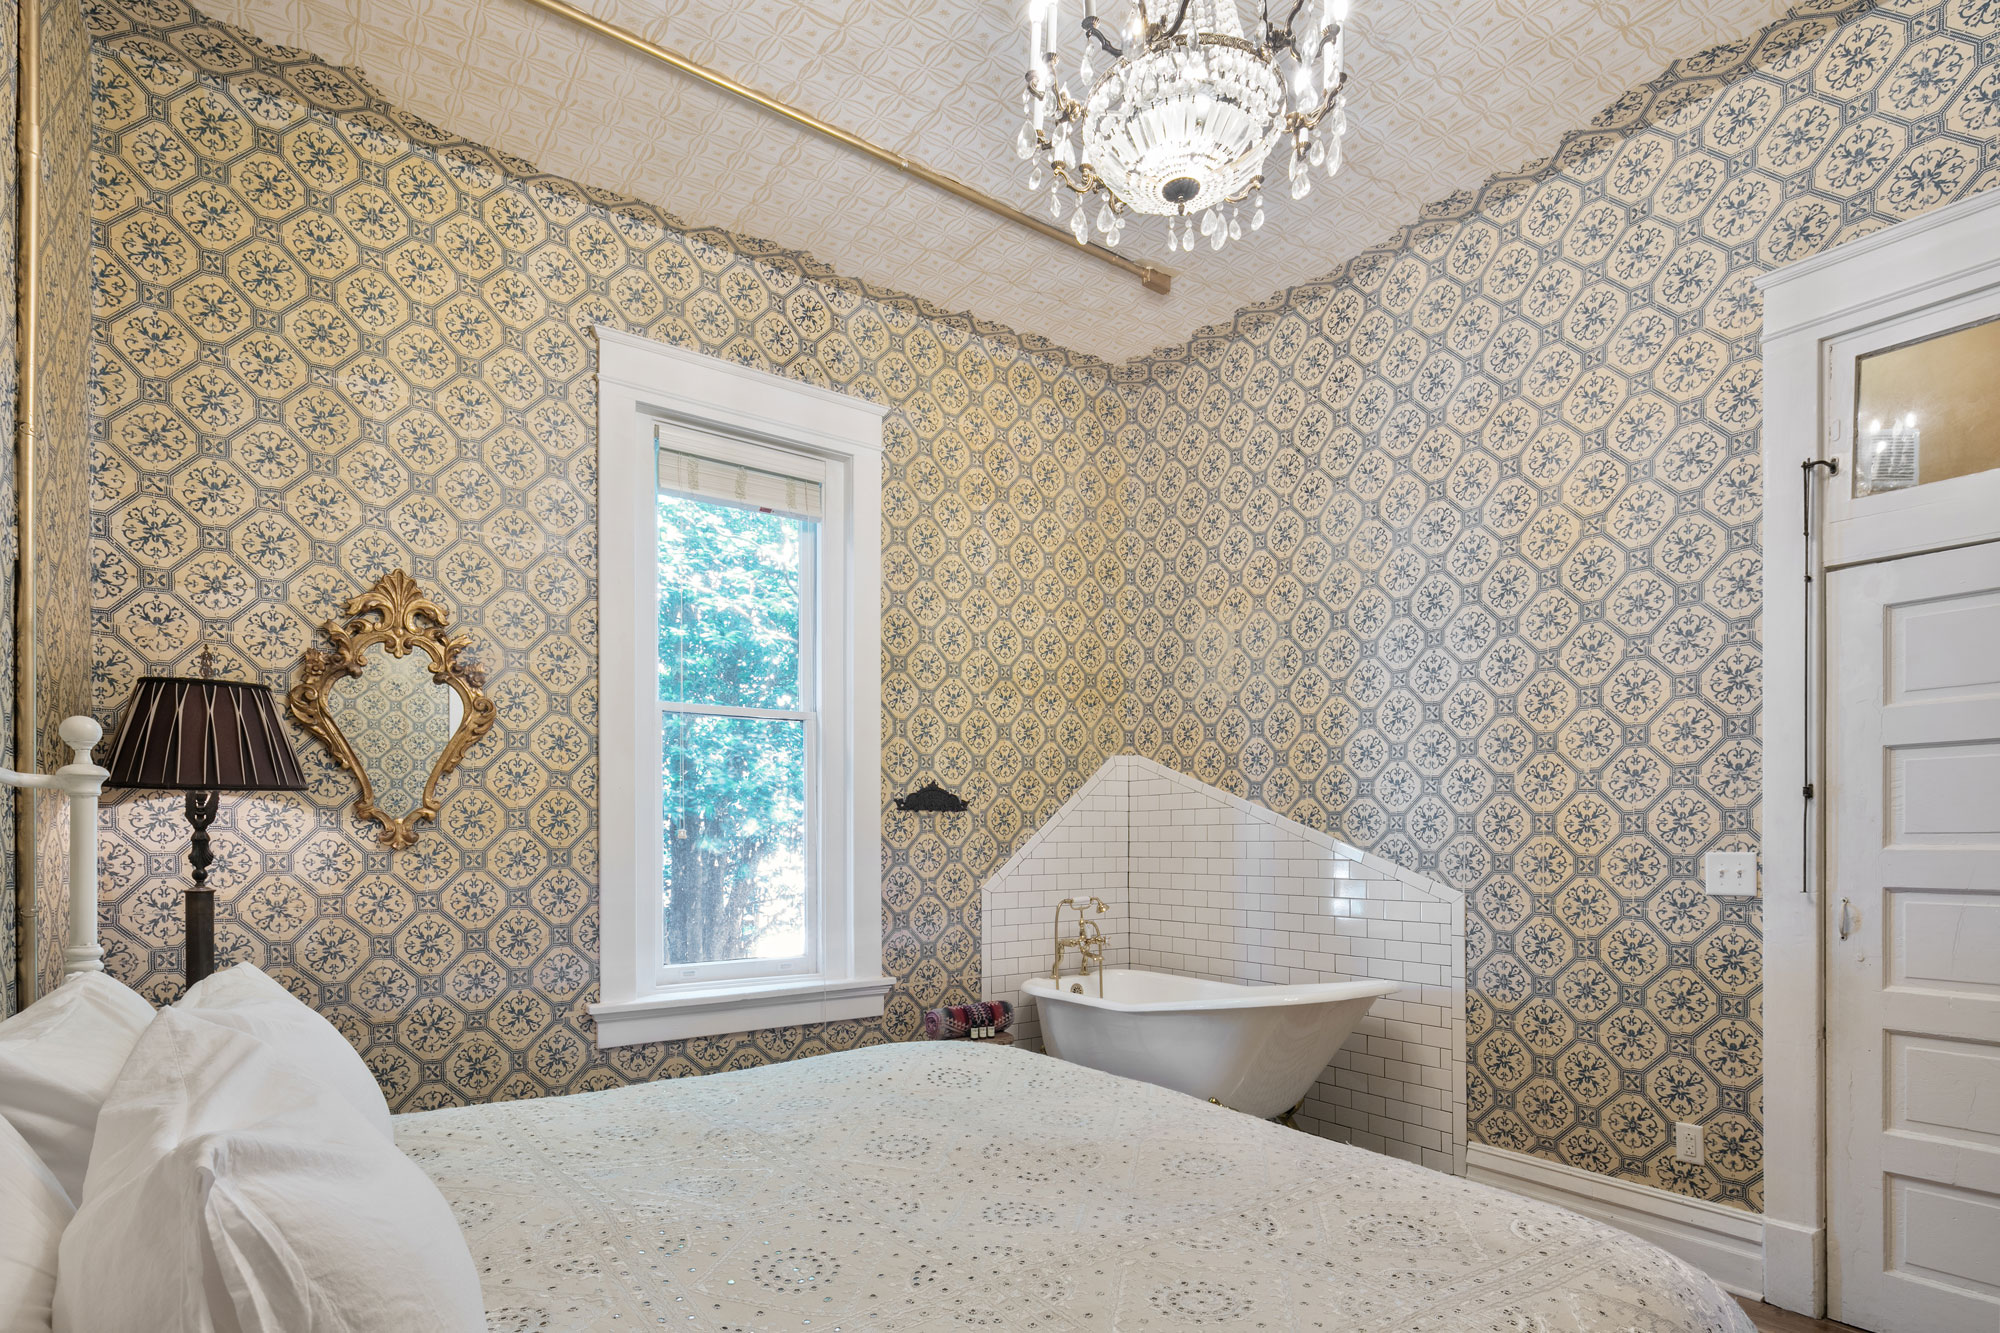 View from beside the king sized bed inside The Victorian Room of Urban Cowboy Nashville. Across from you is a tiled corner, holding a claw foot bathtub. A Victorian floor lamp is near the window, alongside a matching wall mirror.